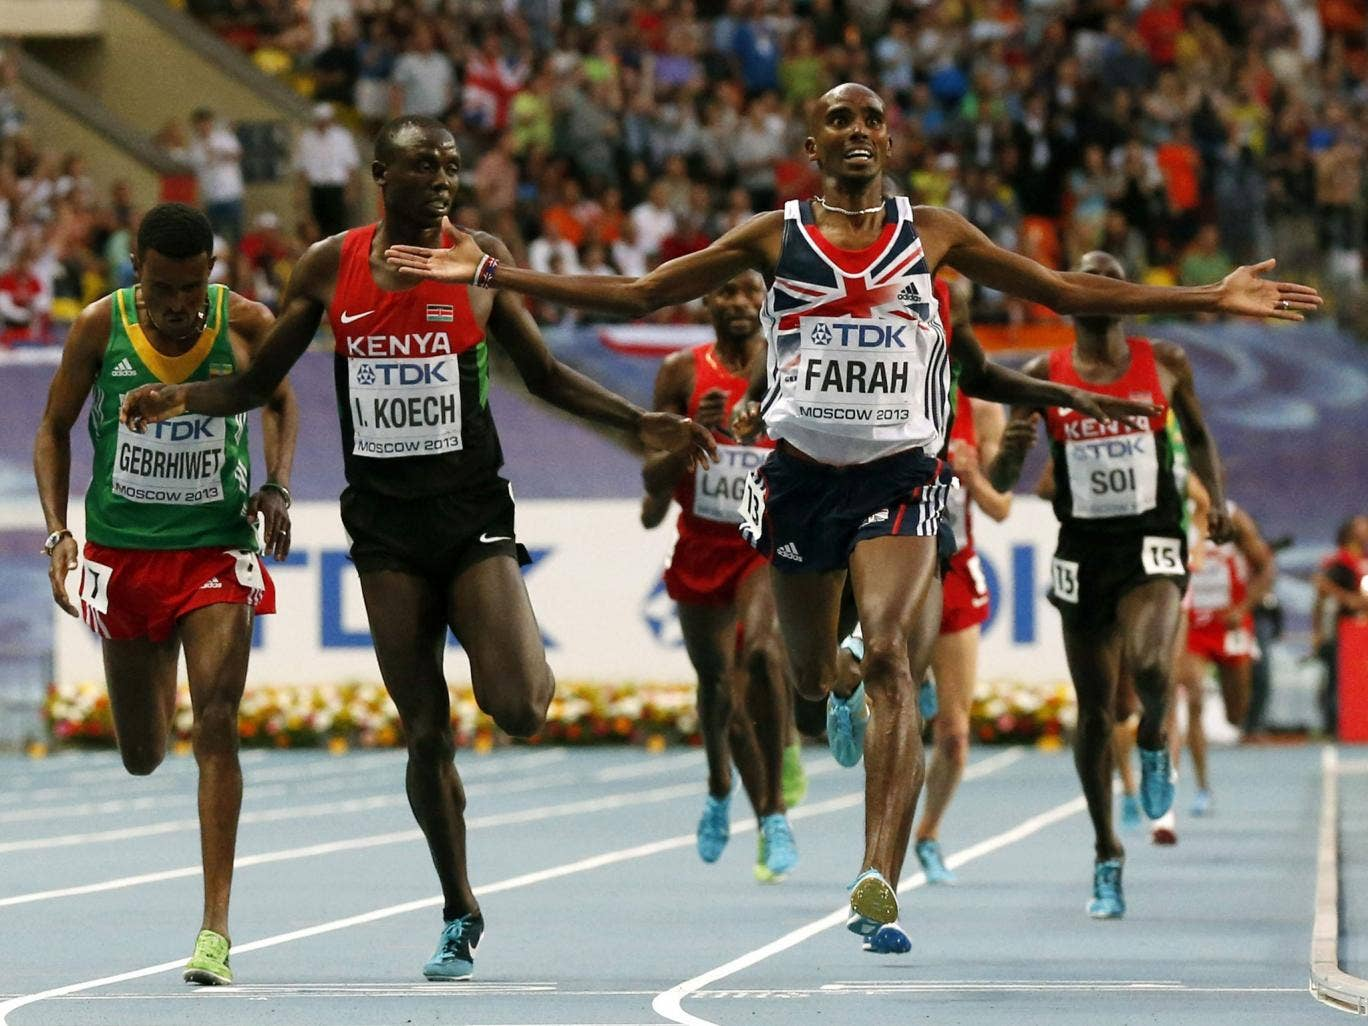 Mo Farah wins again – he is such an inspiration and really deserves his medals